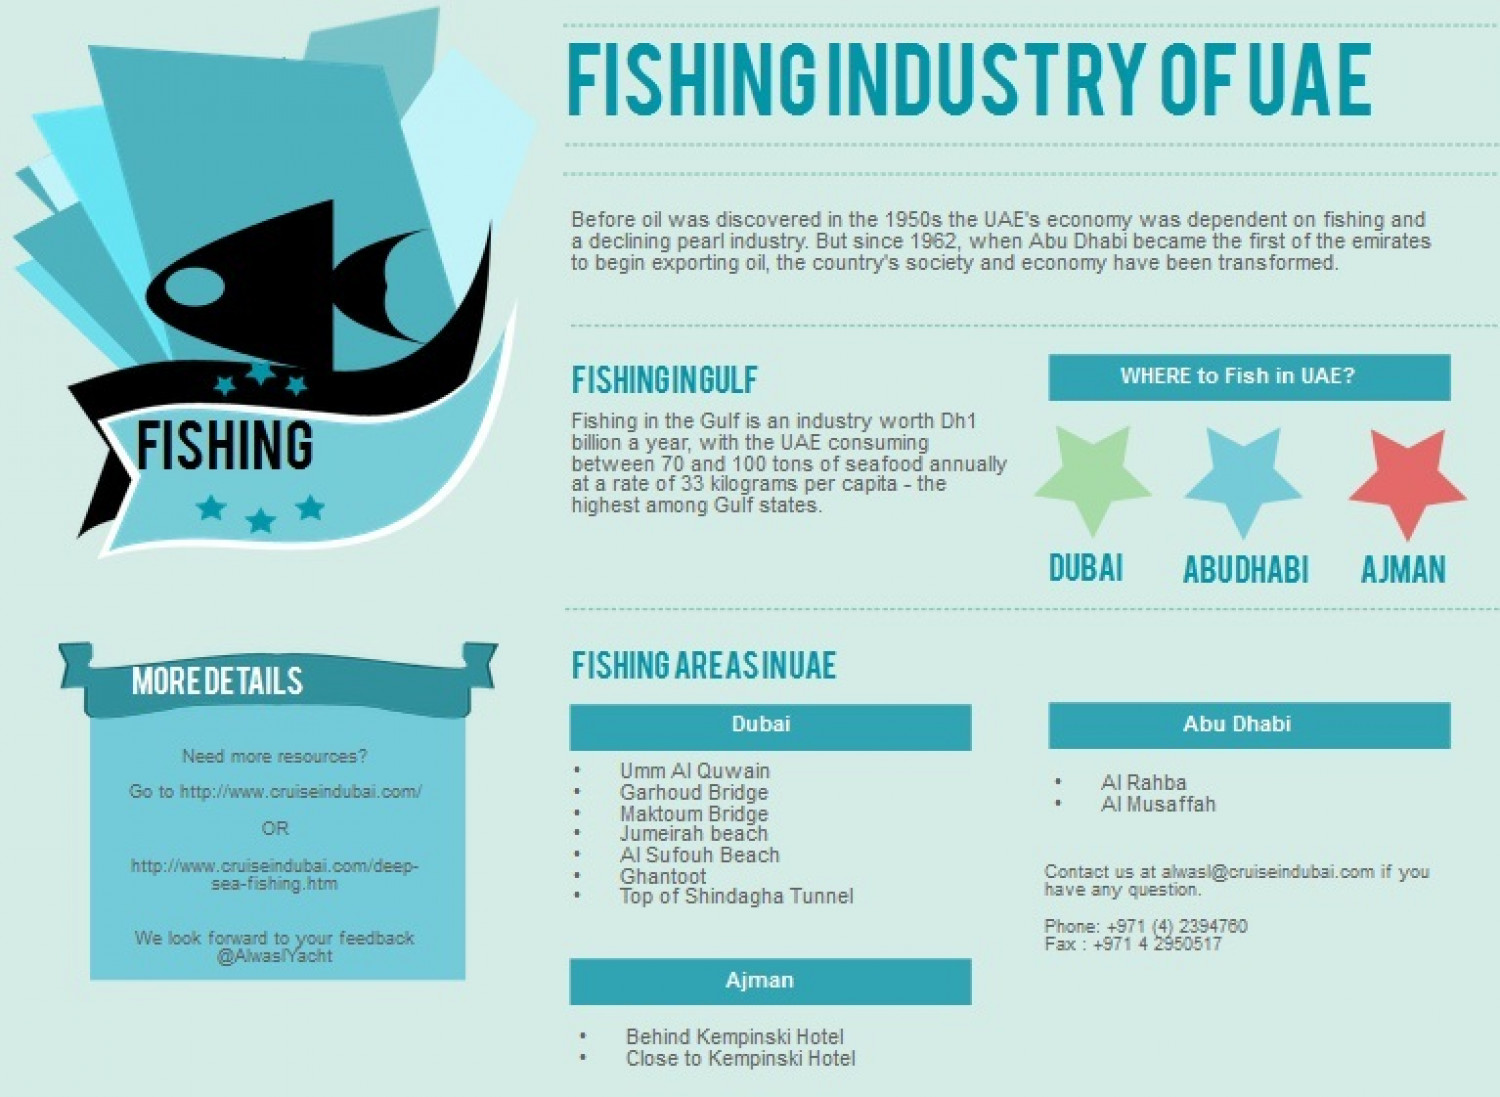 Fishing Industry of UAE Infographic